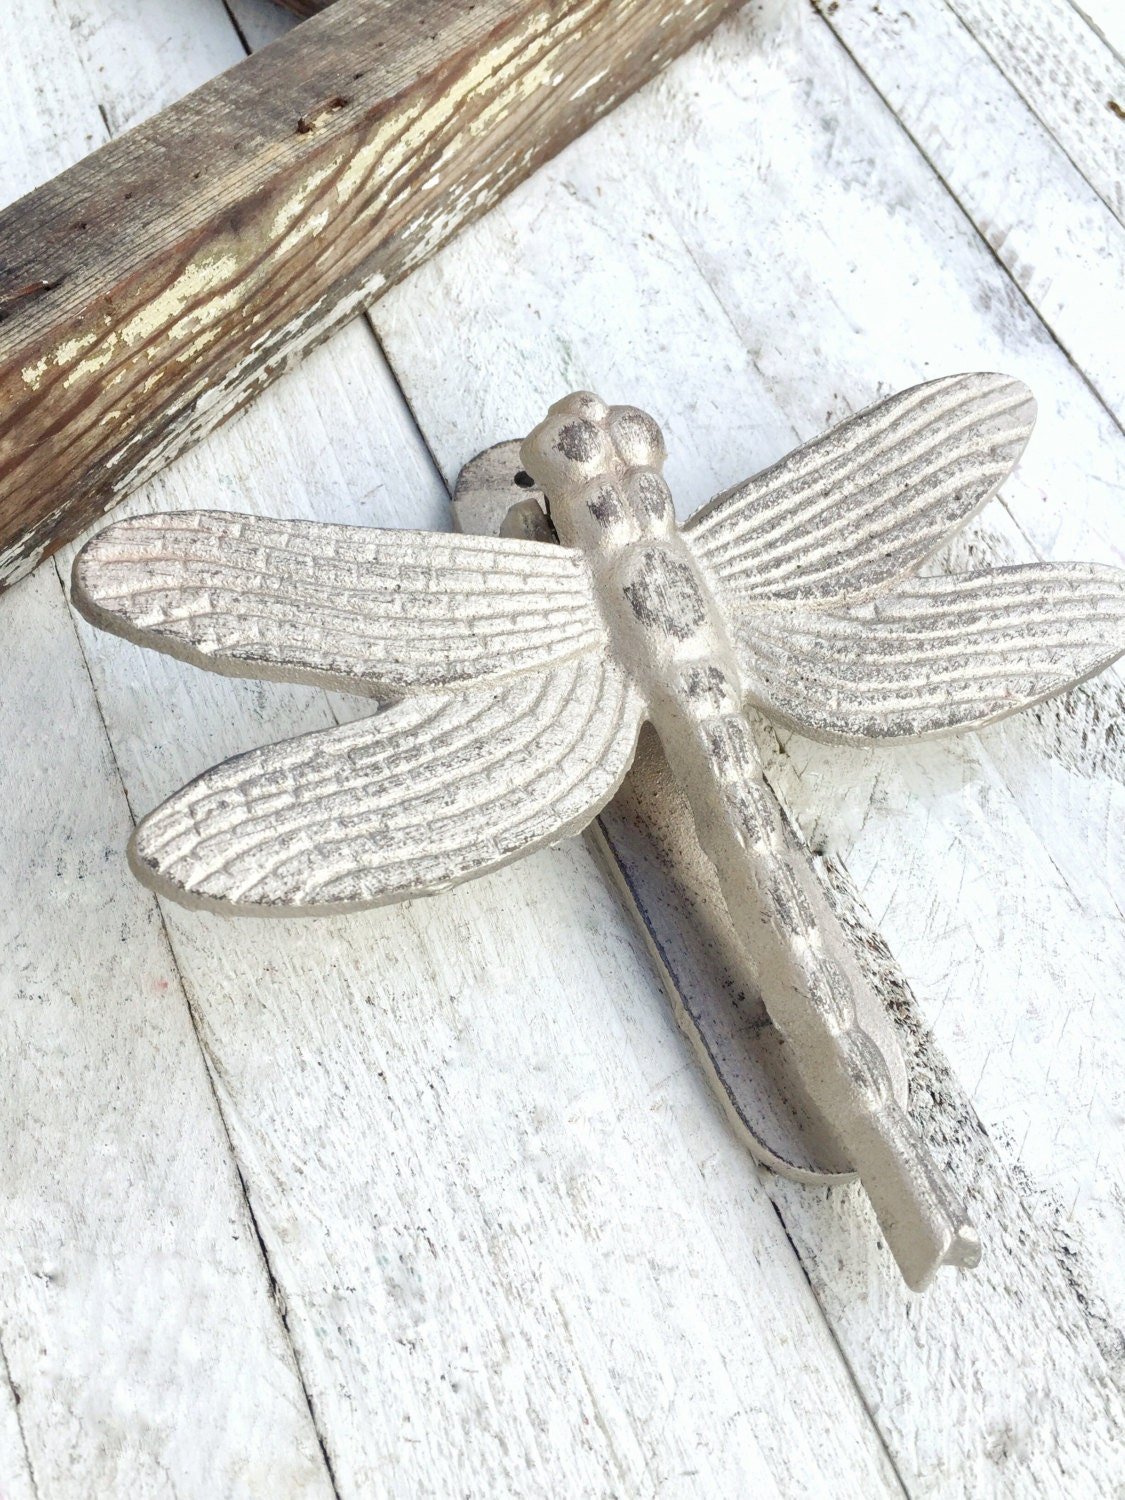 Dragonfly door knocker front door decor iron wall decor - Dragonfly door knocker ...